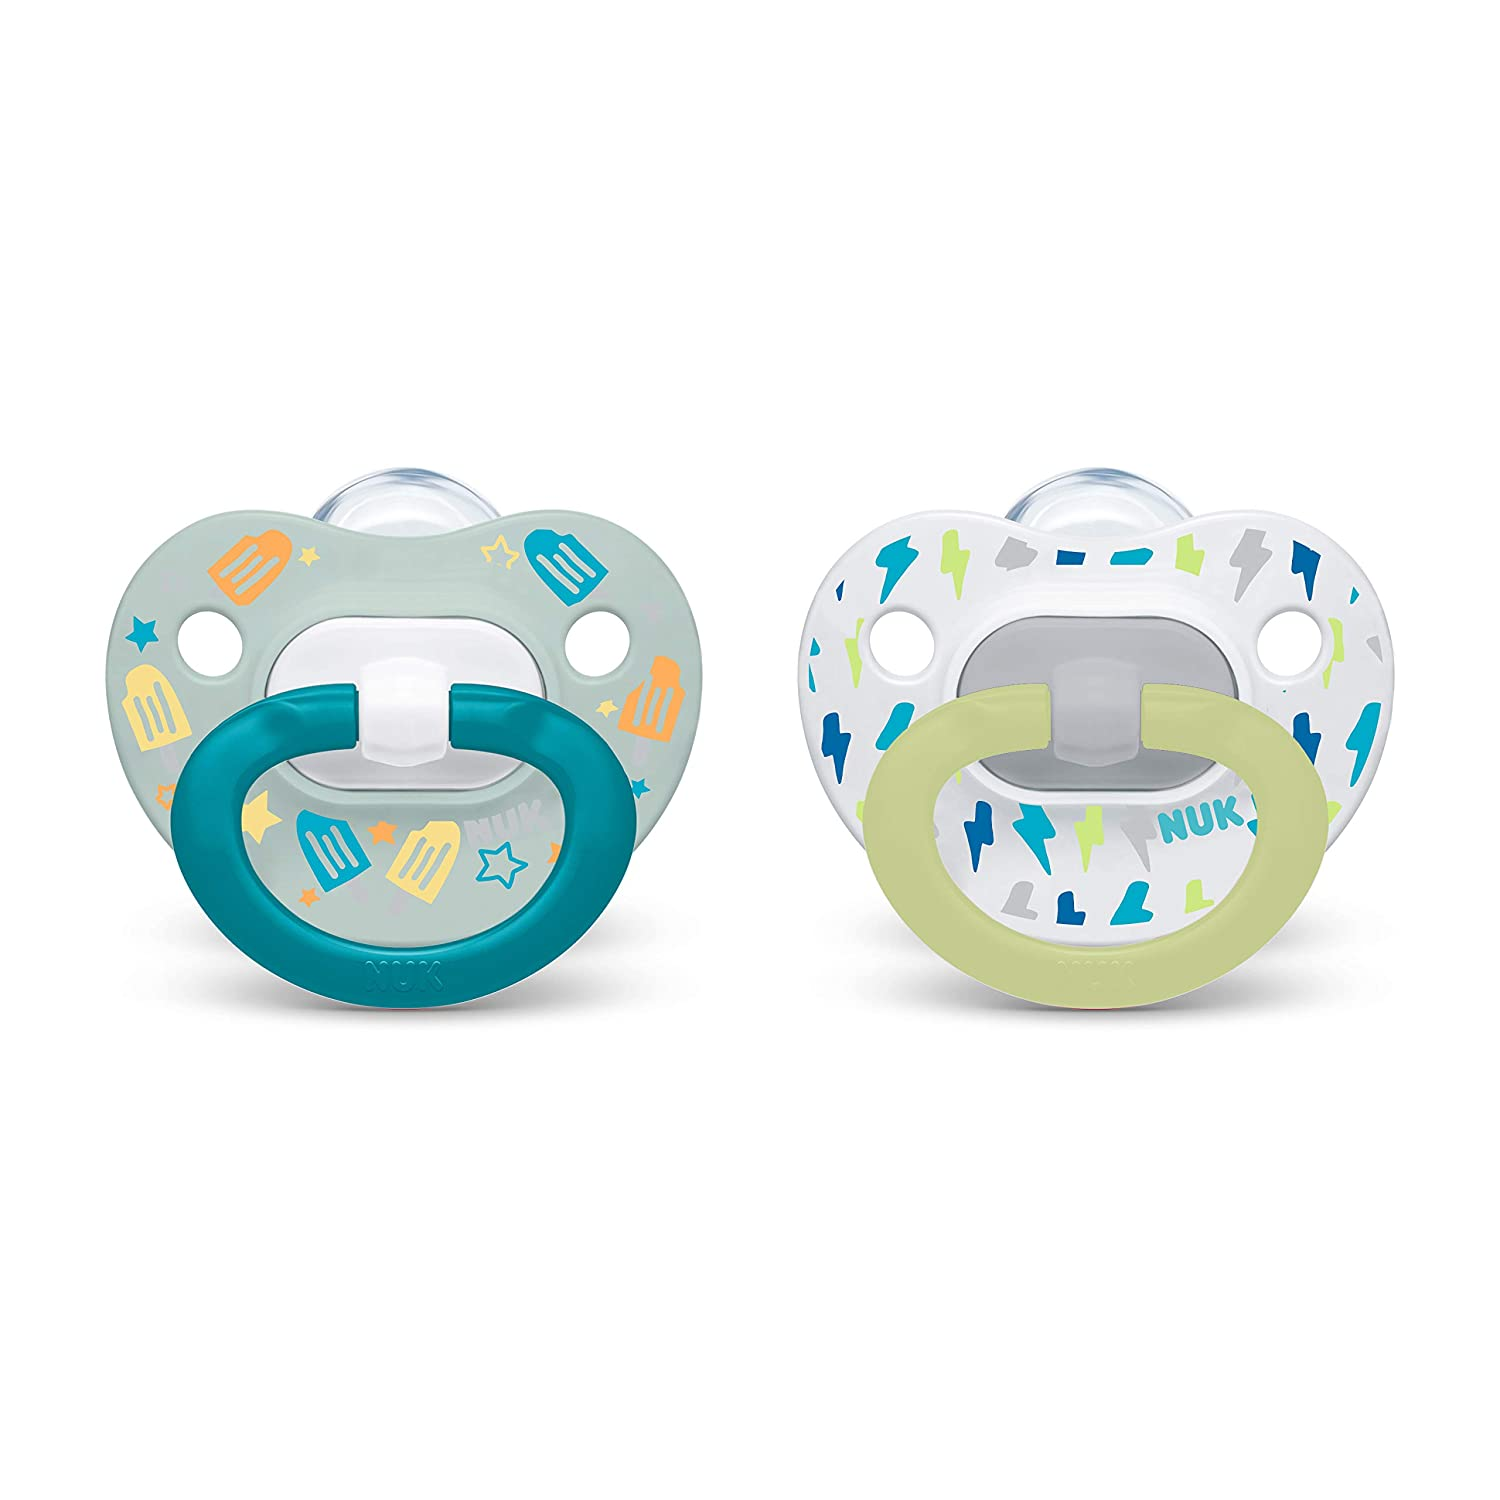 NUK Orthodontic Pacifier Value Pack, Blue White, 6-18 Months, 2-Pack